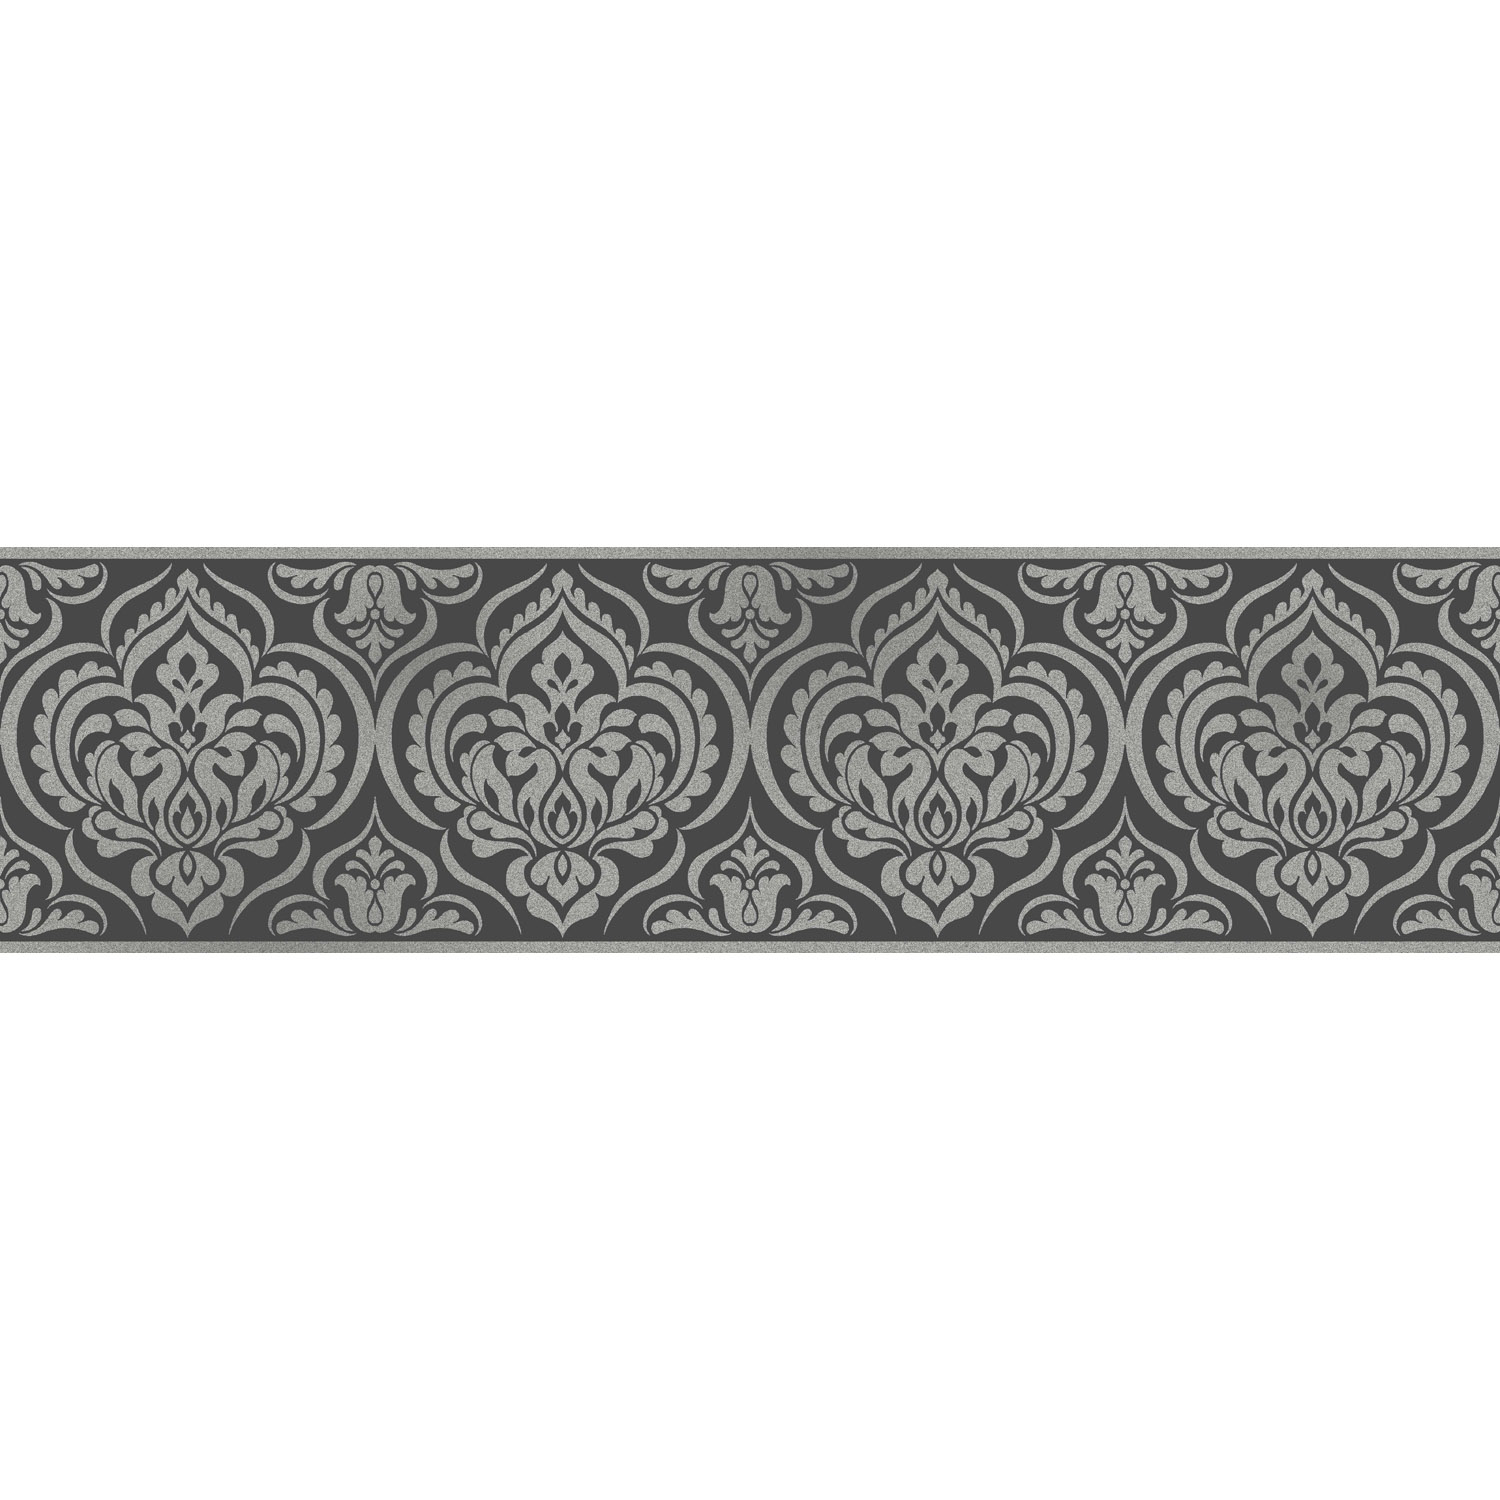 Fine Decor Glitz Ornamental Damask Wallpaper Border Black S